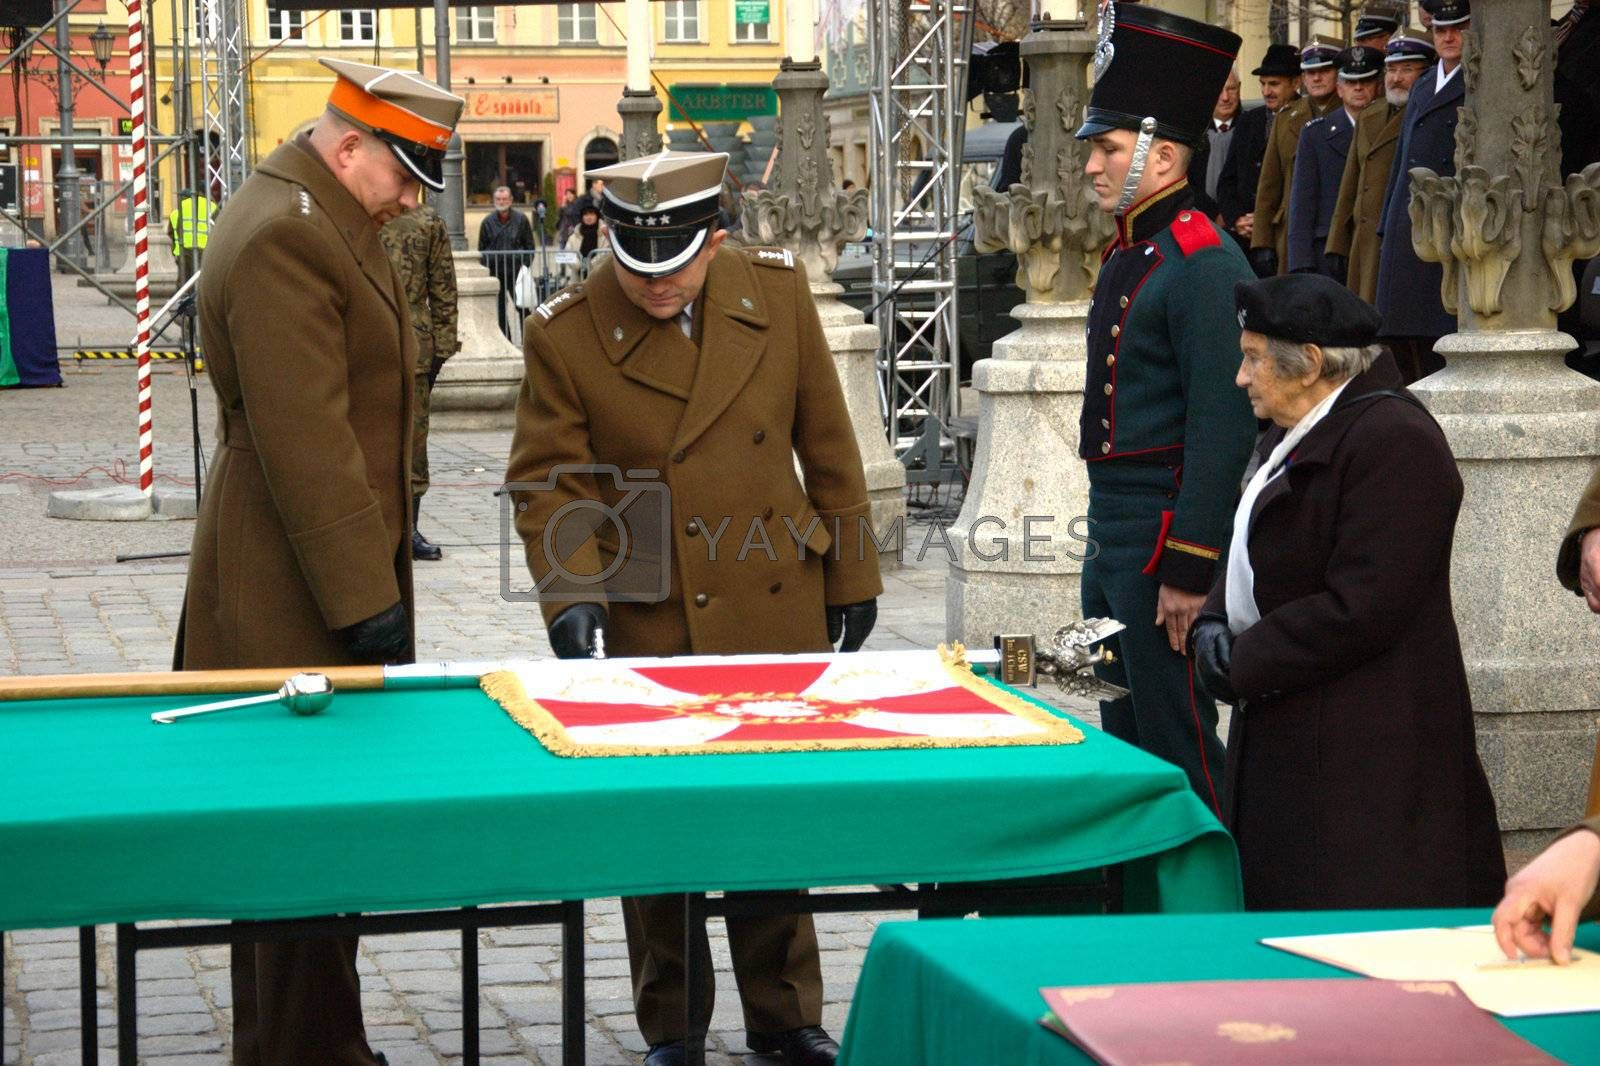 WROCLAW, POLAND - DECEMBER 2: Polish army, engineering training center for troops receives new army banner. Officer blesses new banner on December 2, 2011.